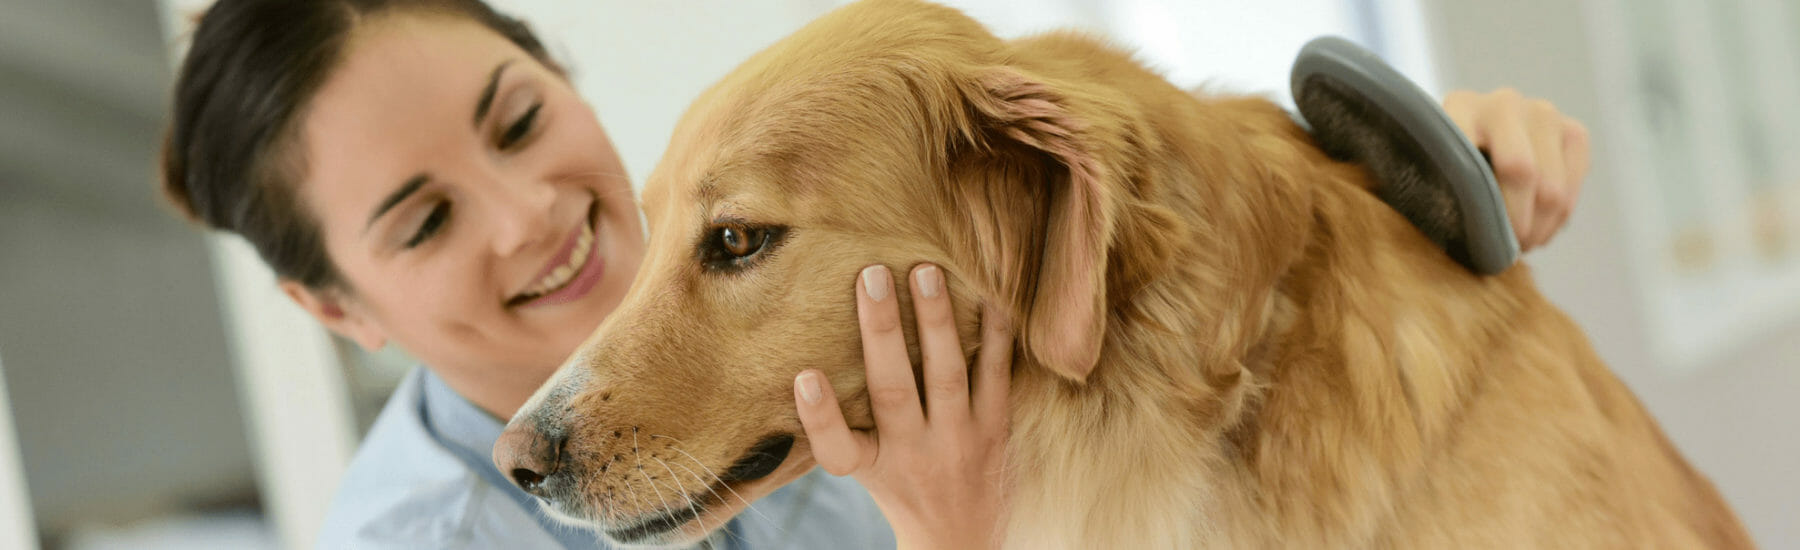 Grooming Services for pets